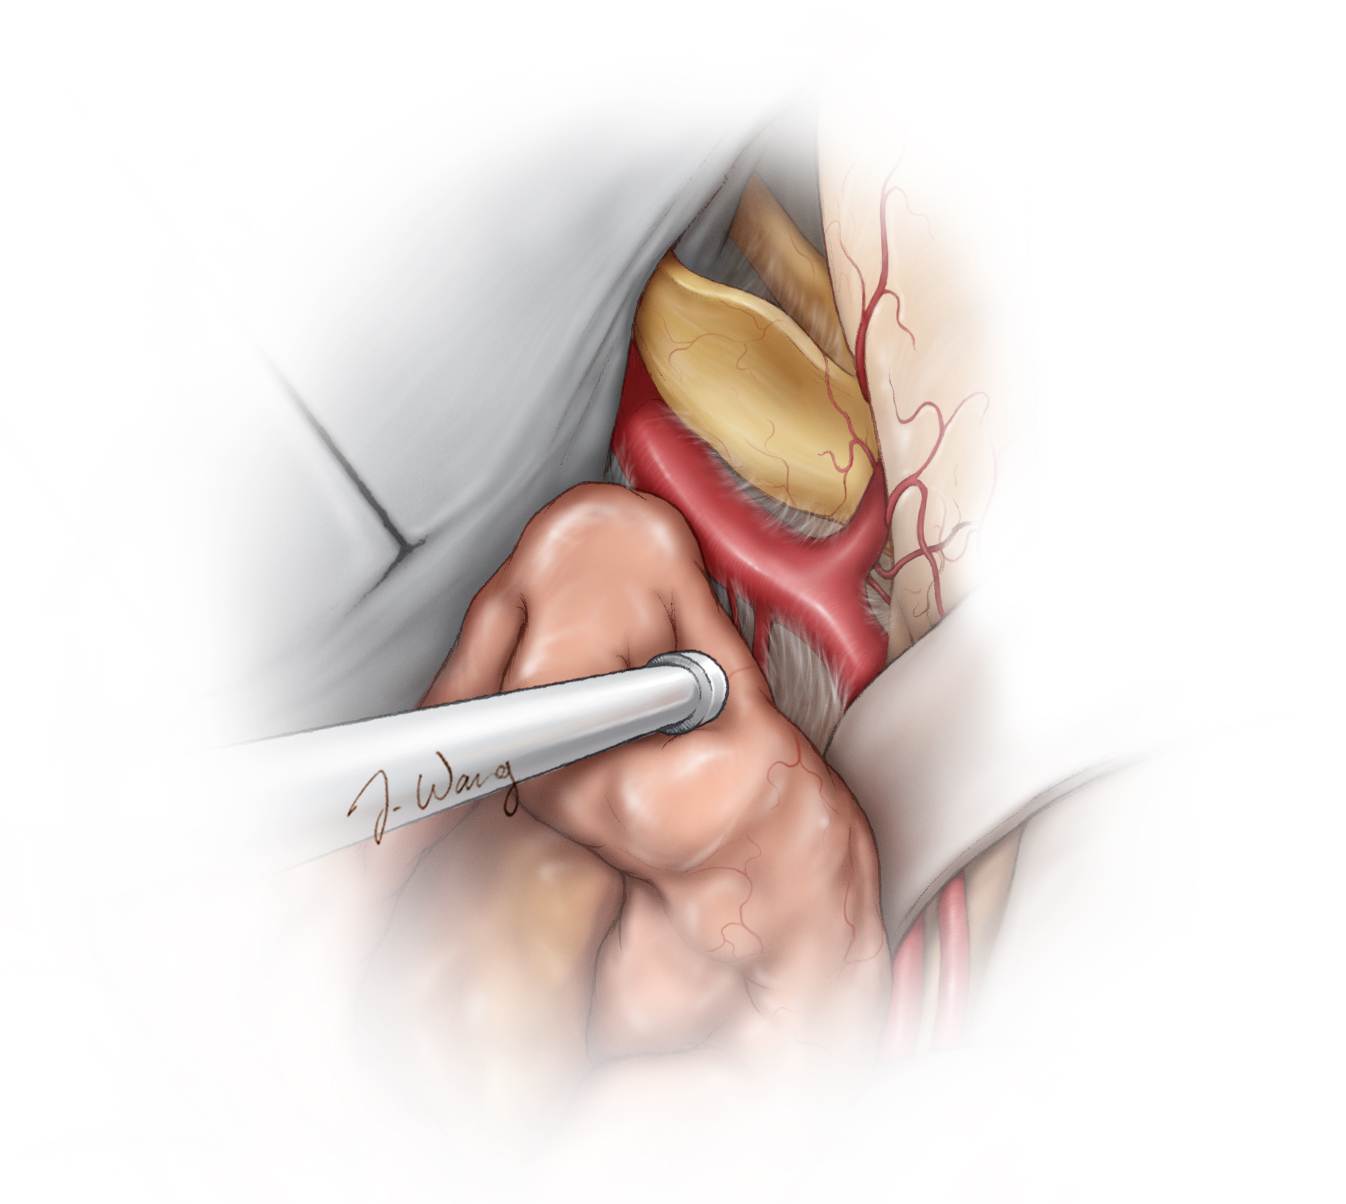 Figure 13: Gentle mobilization of the medial capsule and sharp dissection will uncover the optic nerve and proximal ICA. The falciform ligament is incised to untether the optic nerve. The posterior communicating artery can be seen originating from the posterior wall of ICA. This artery is an indicator for the general location of the oculomotor nerve. It the tumor is very adherent to the nerves or vessels, aggressive manipulation and blunt dissection must be avoided and a sheet of tumor left behind. Despite gentle handling of the tumor around the oculomotor nerve and tentorium, most patients will suffer from transient third and fourth nerve palsies after surgery. Coagulation of the tentorium around these nerves should be minimized as much as feasible.